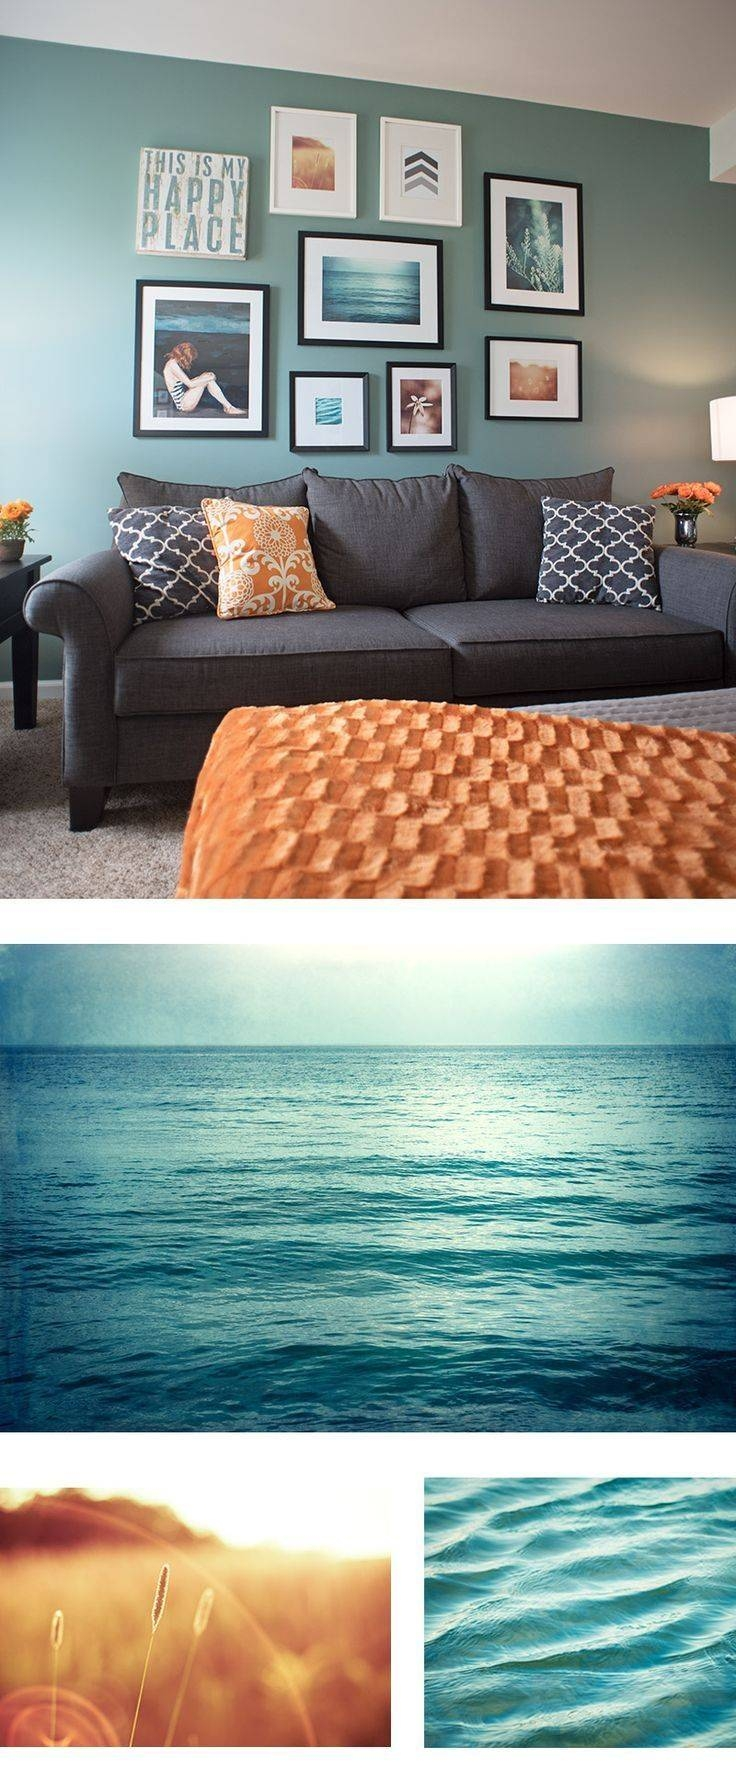 Best 25+ Teal Wall Art Ideas On Pinterest | Turquoise, Light Teal Pertaining To Latest Orange And Turquoise Wall Art (View 8 of 20)